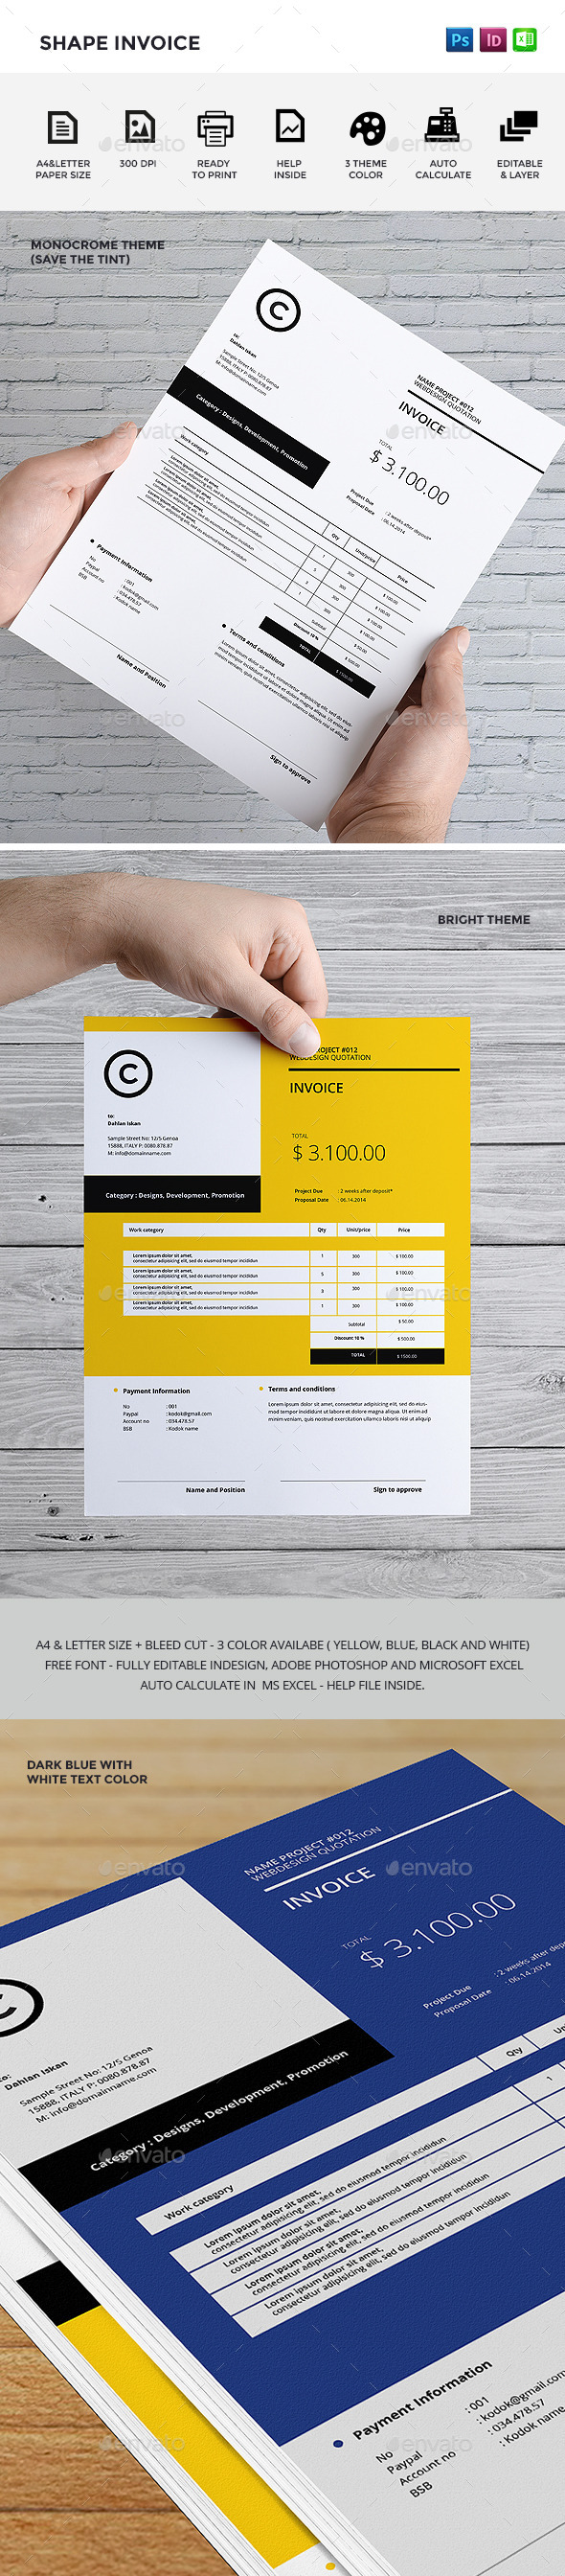 GraphicRiver Shape Invoice 9308236